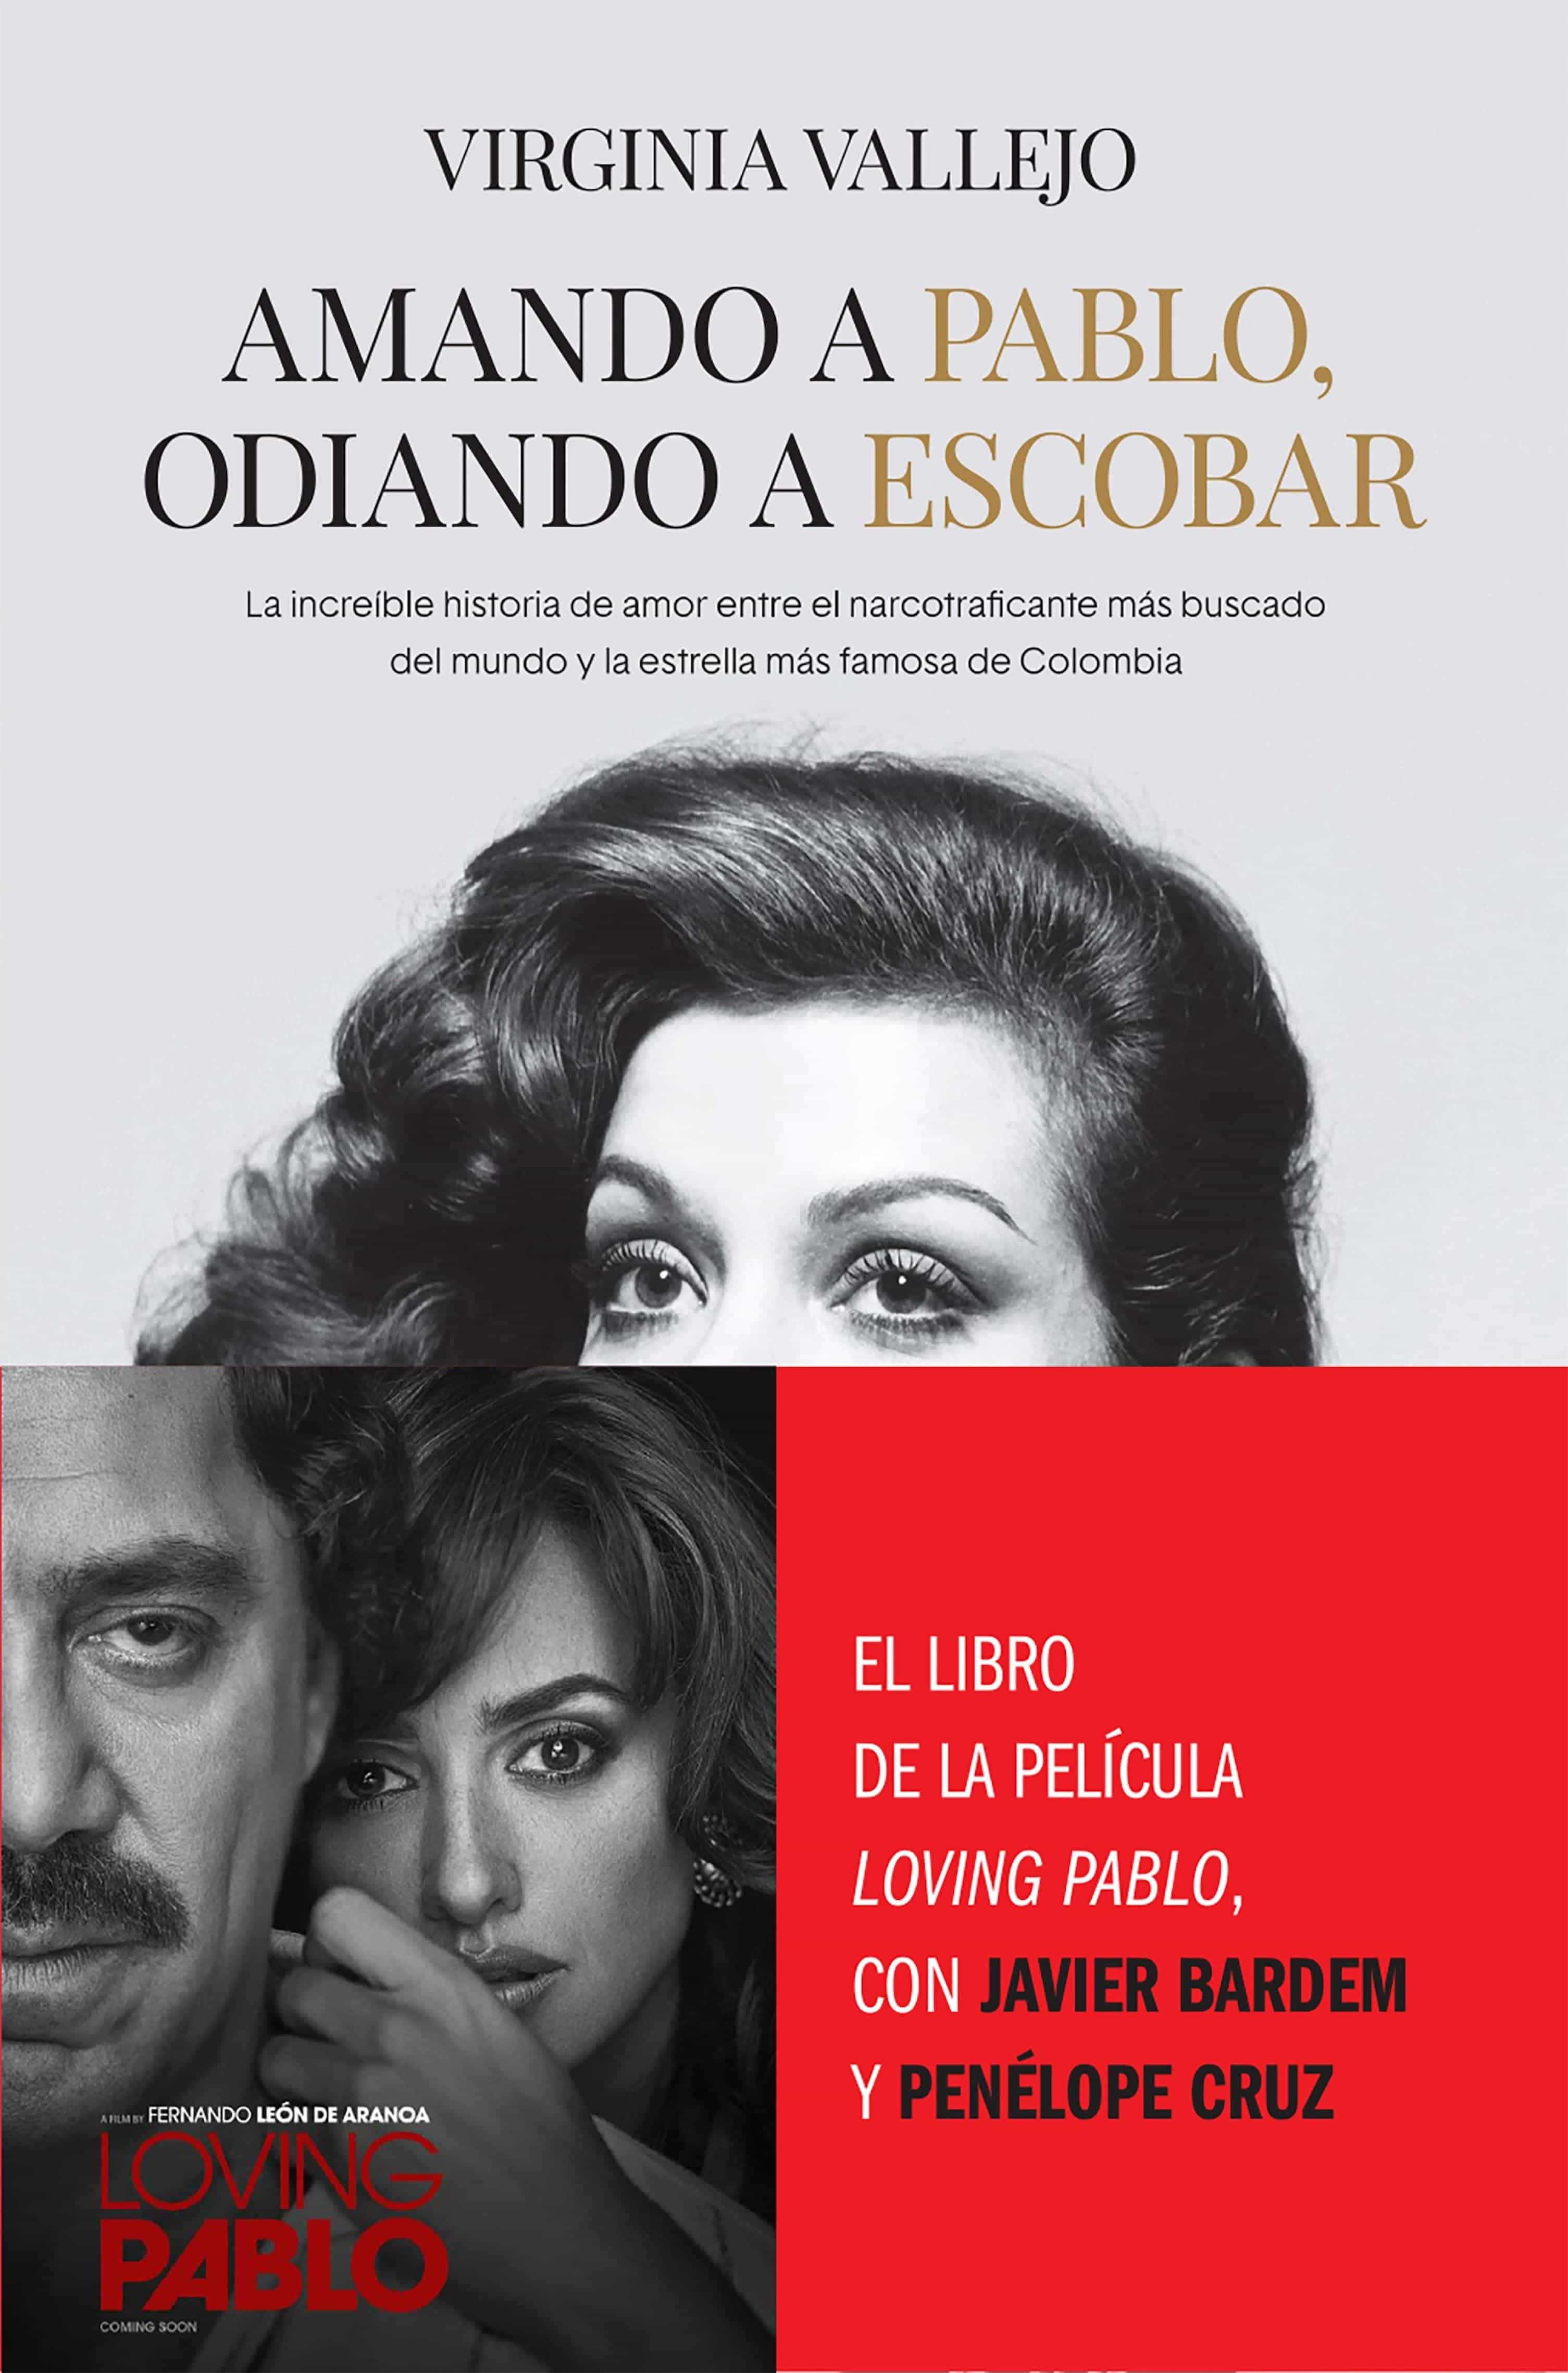 Libro Sobre Pablo Escobar Amando A Pablo Odiando A Escobar Descargar Ebook Download